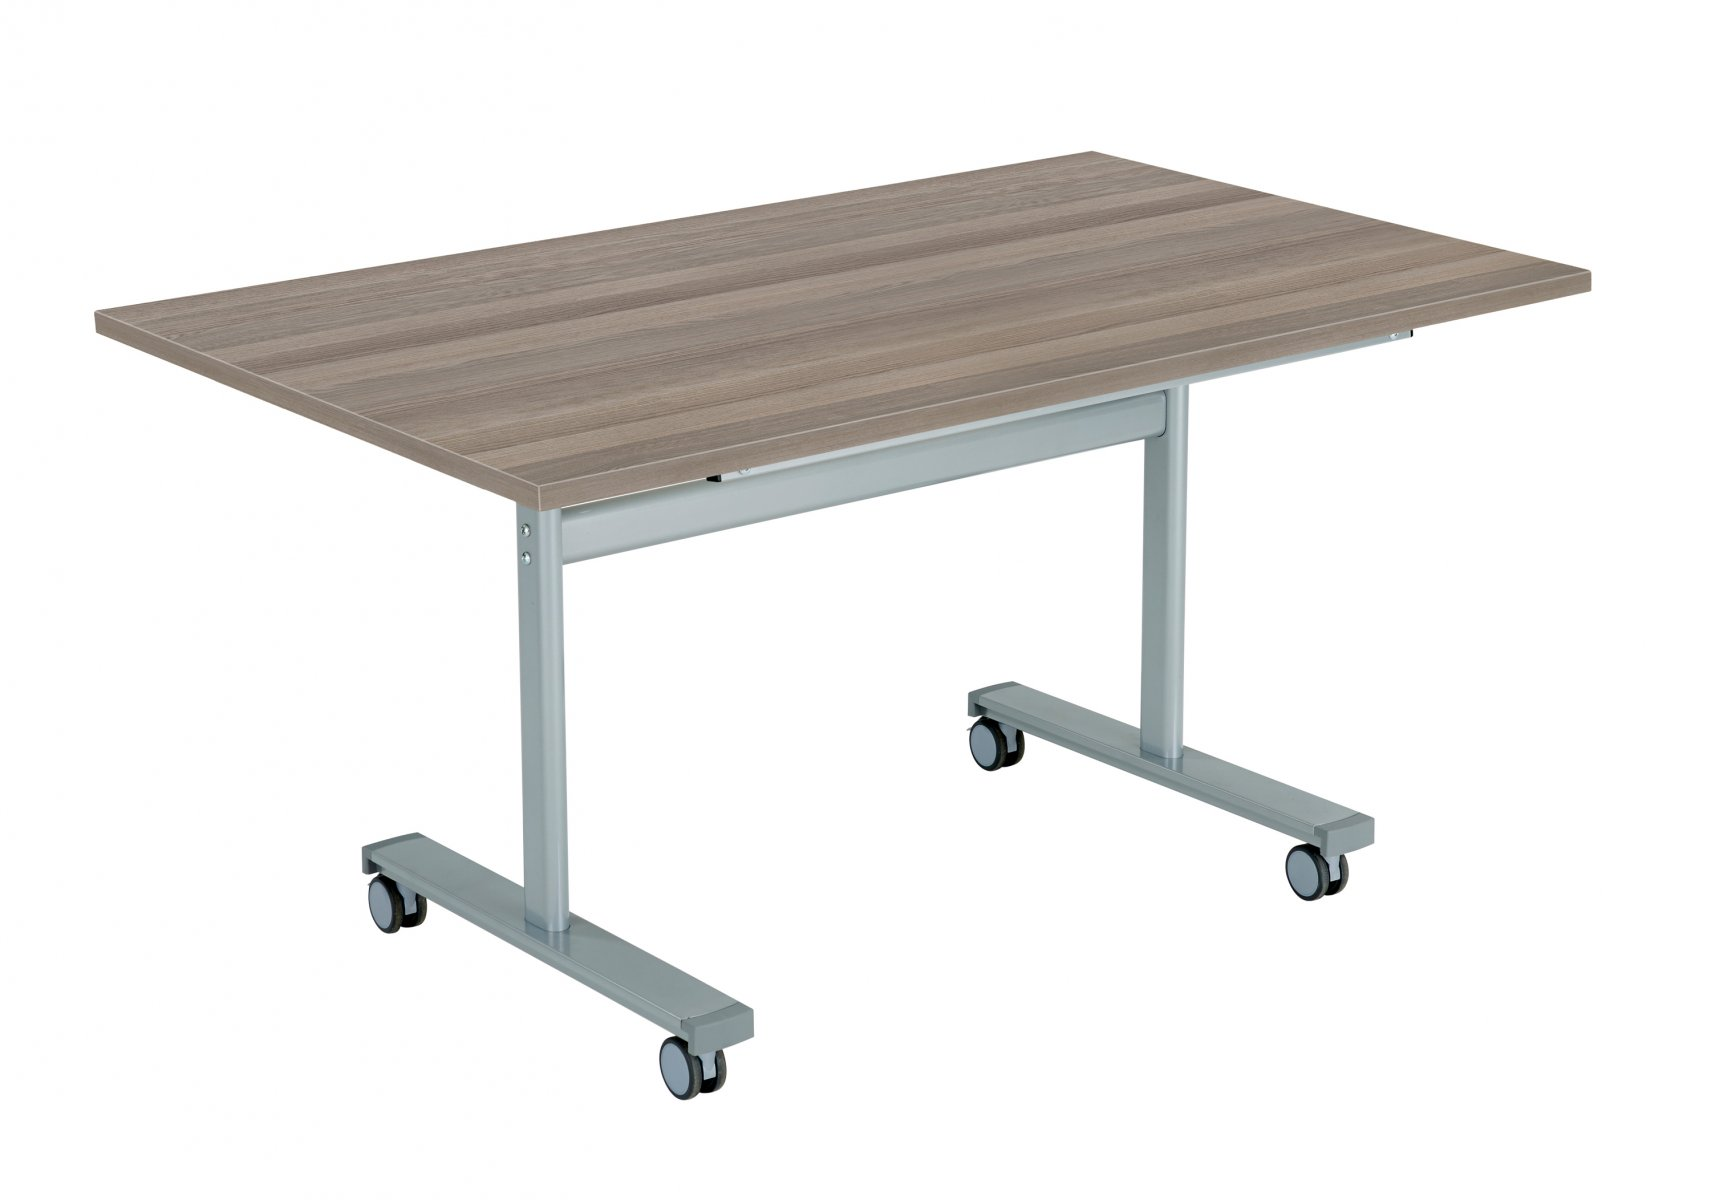 Gyrate Rectangular Flip Top 140 x 70 Meeting Table - Grey Oak